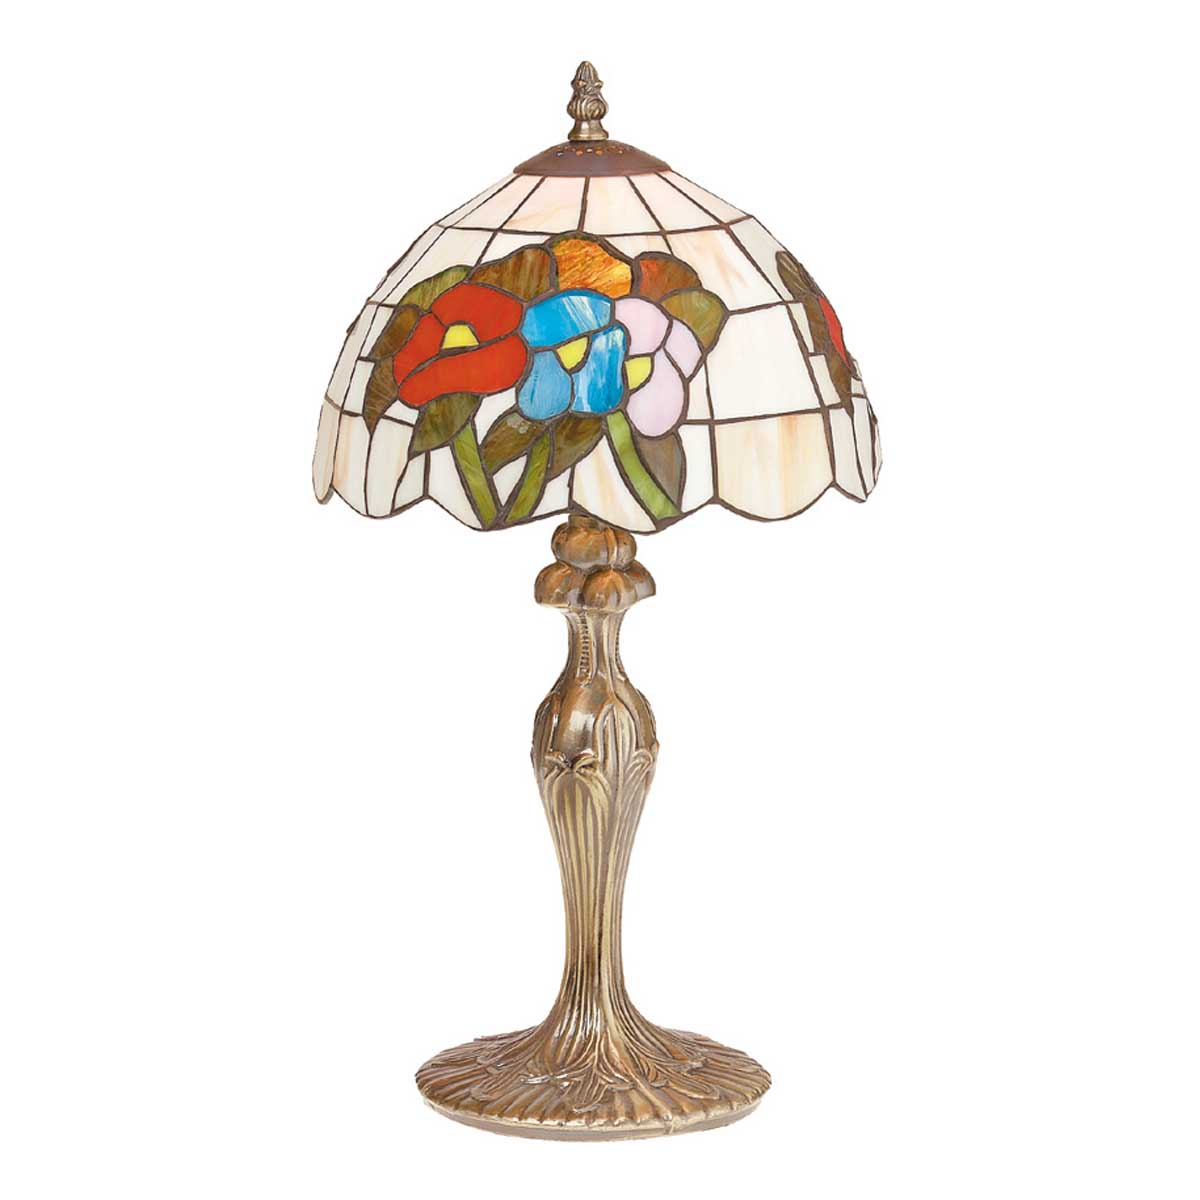 table lamp antique brass style stained glass 19 h. Black Bedroom Furniture Sets. Home Design Ideas